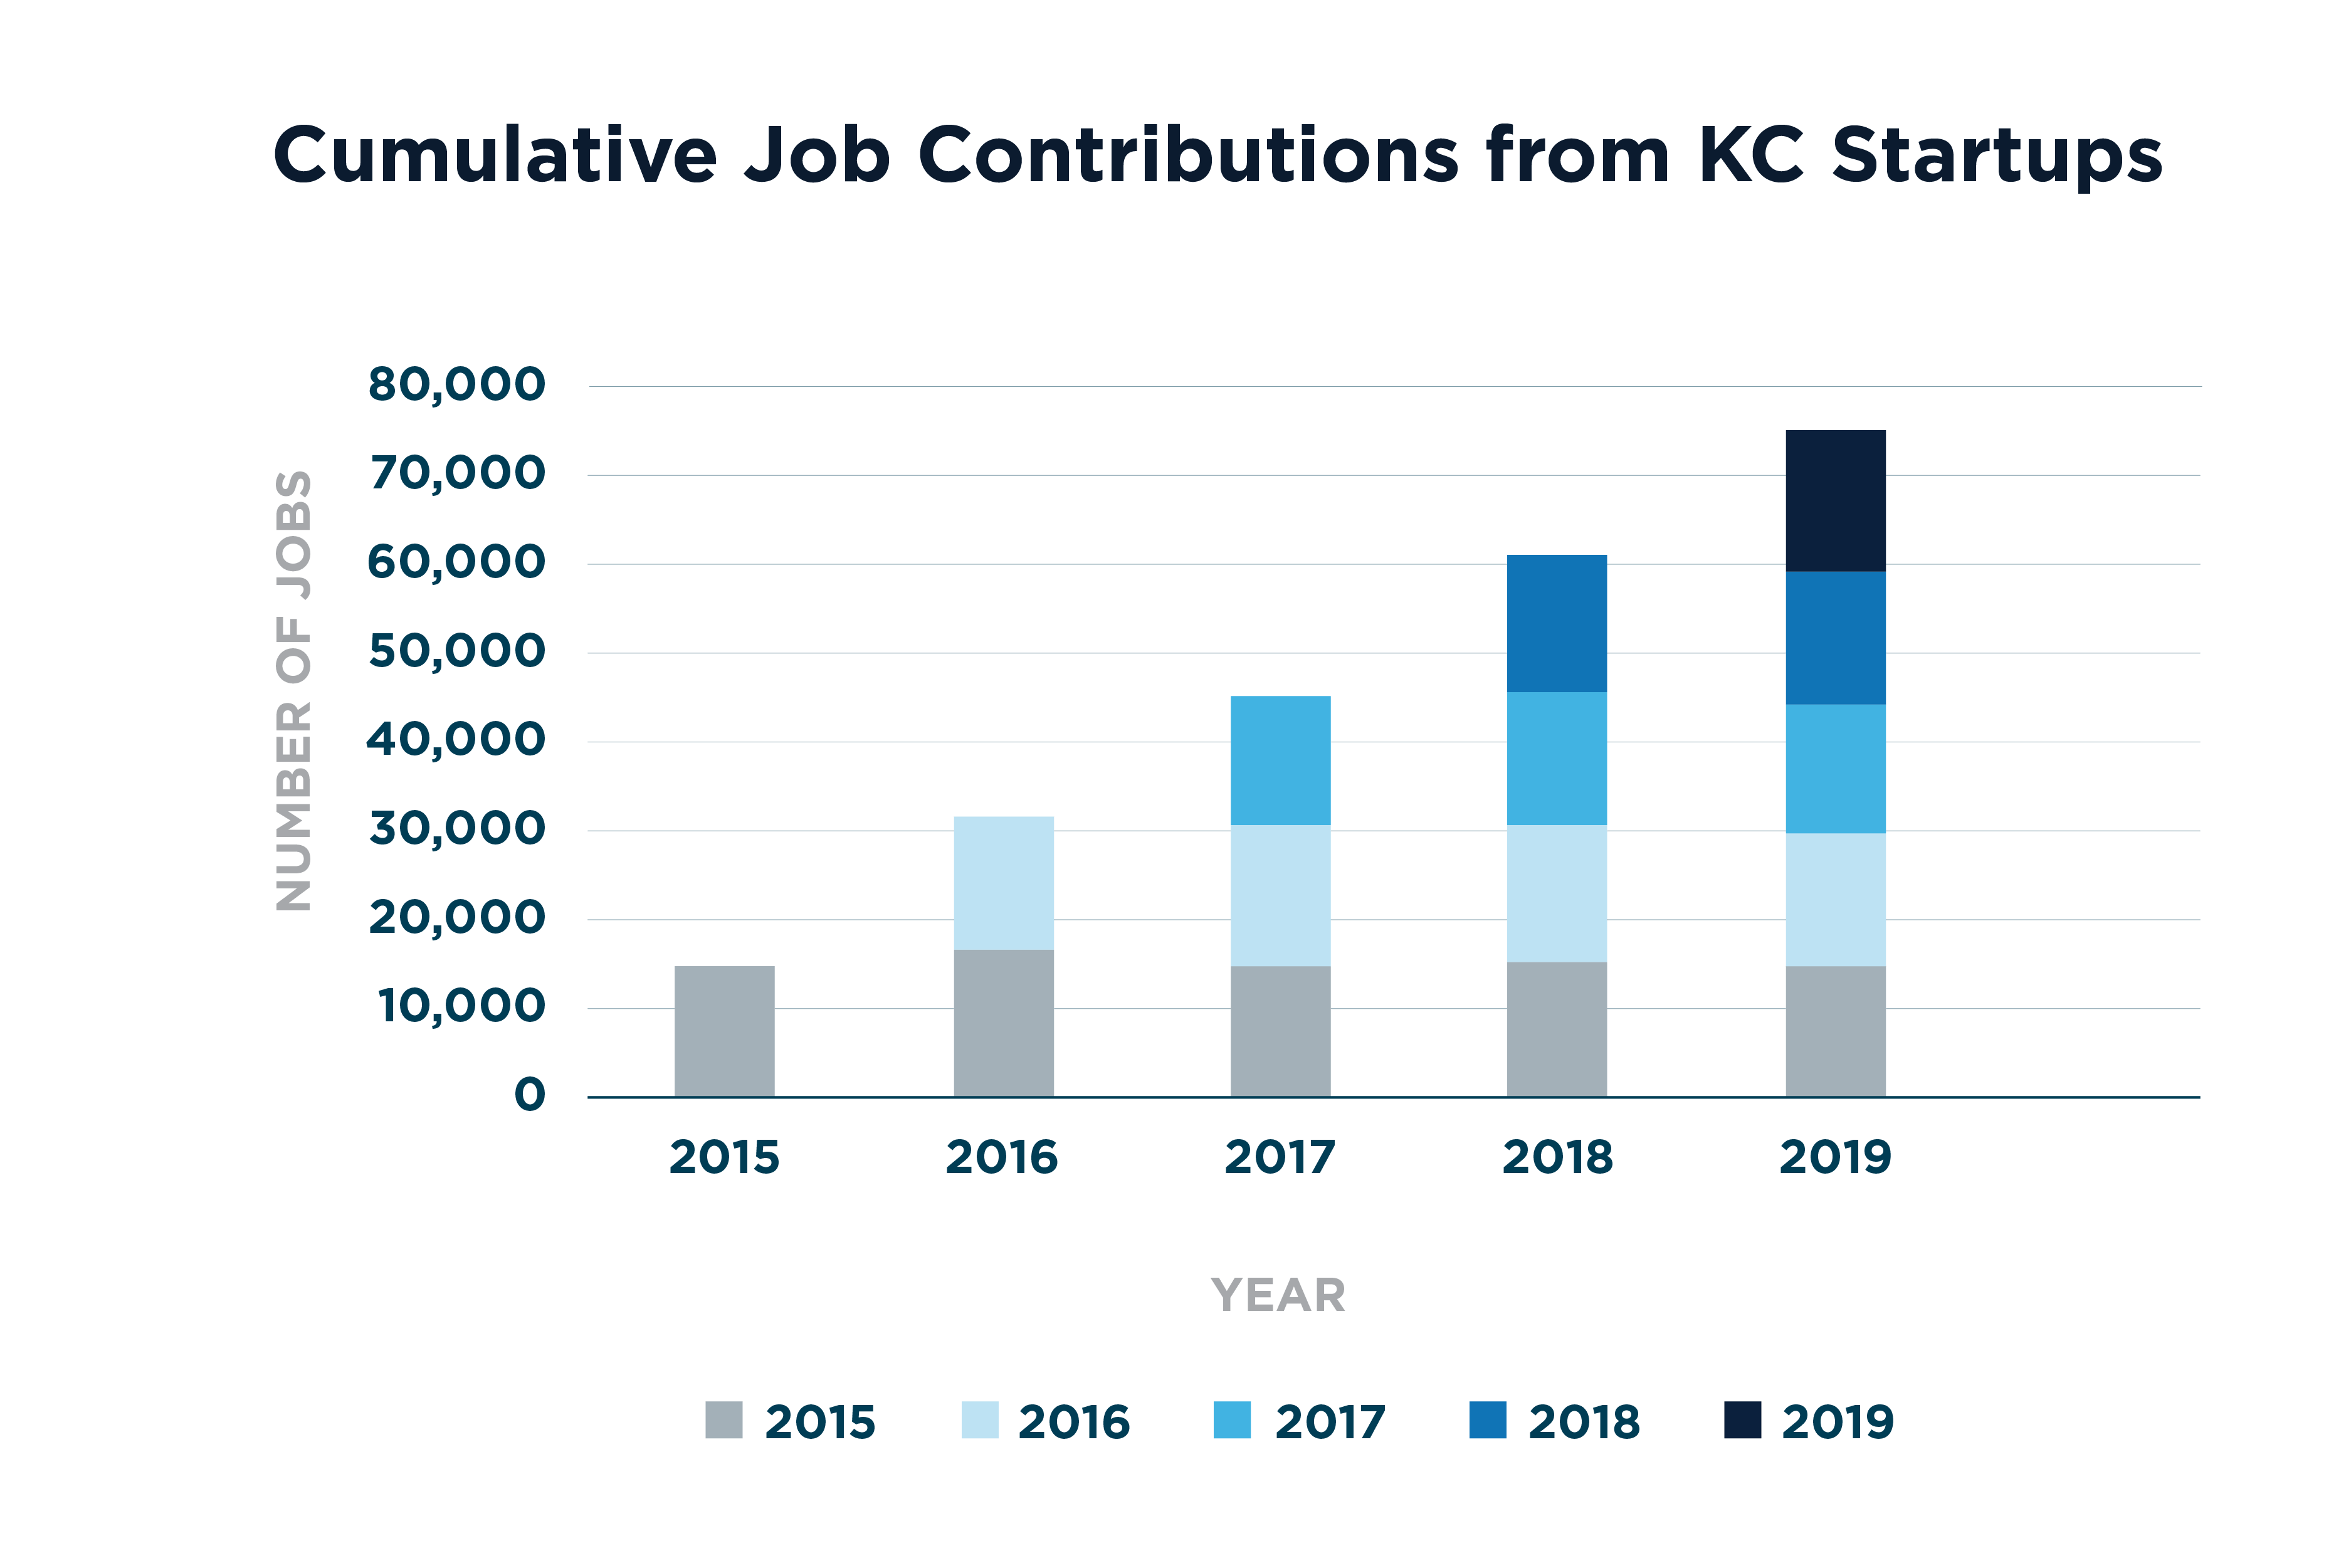 Cumulative Economic Impact of Startups, from 2015-2019